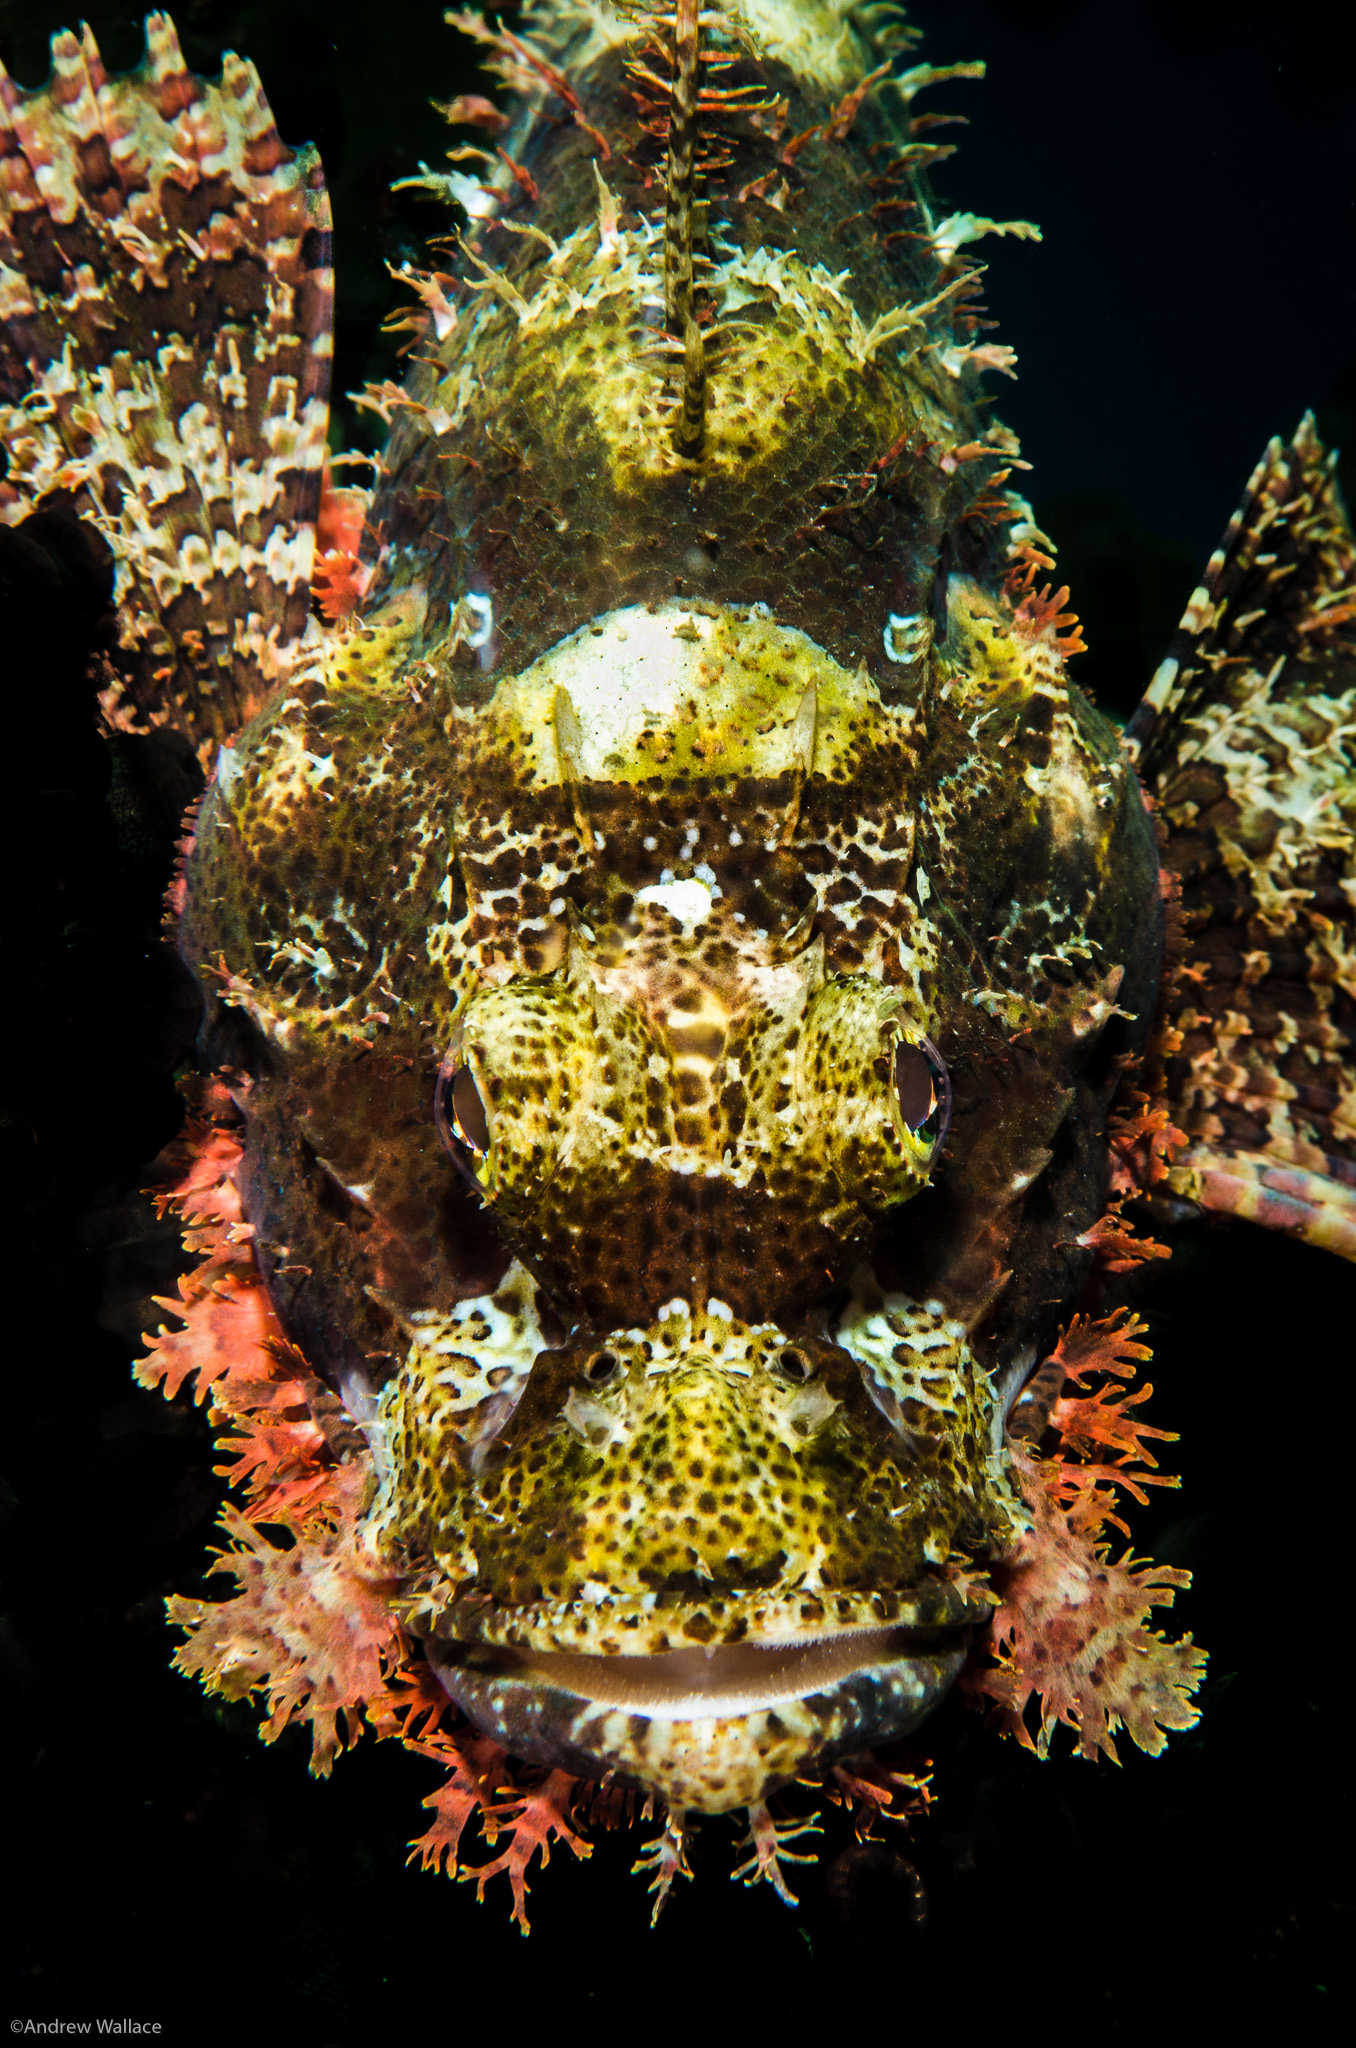 Underwater    Scorpionfish - Komodo National Park   Images I have take from all over the world, and in my own Monterey backyard.